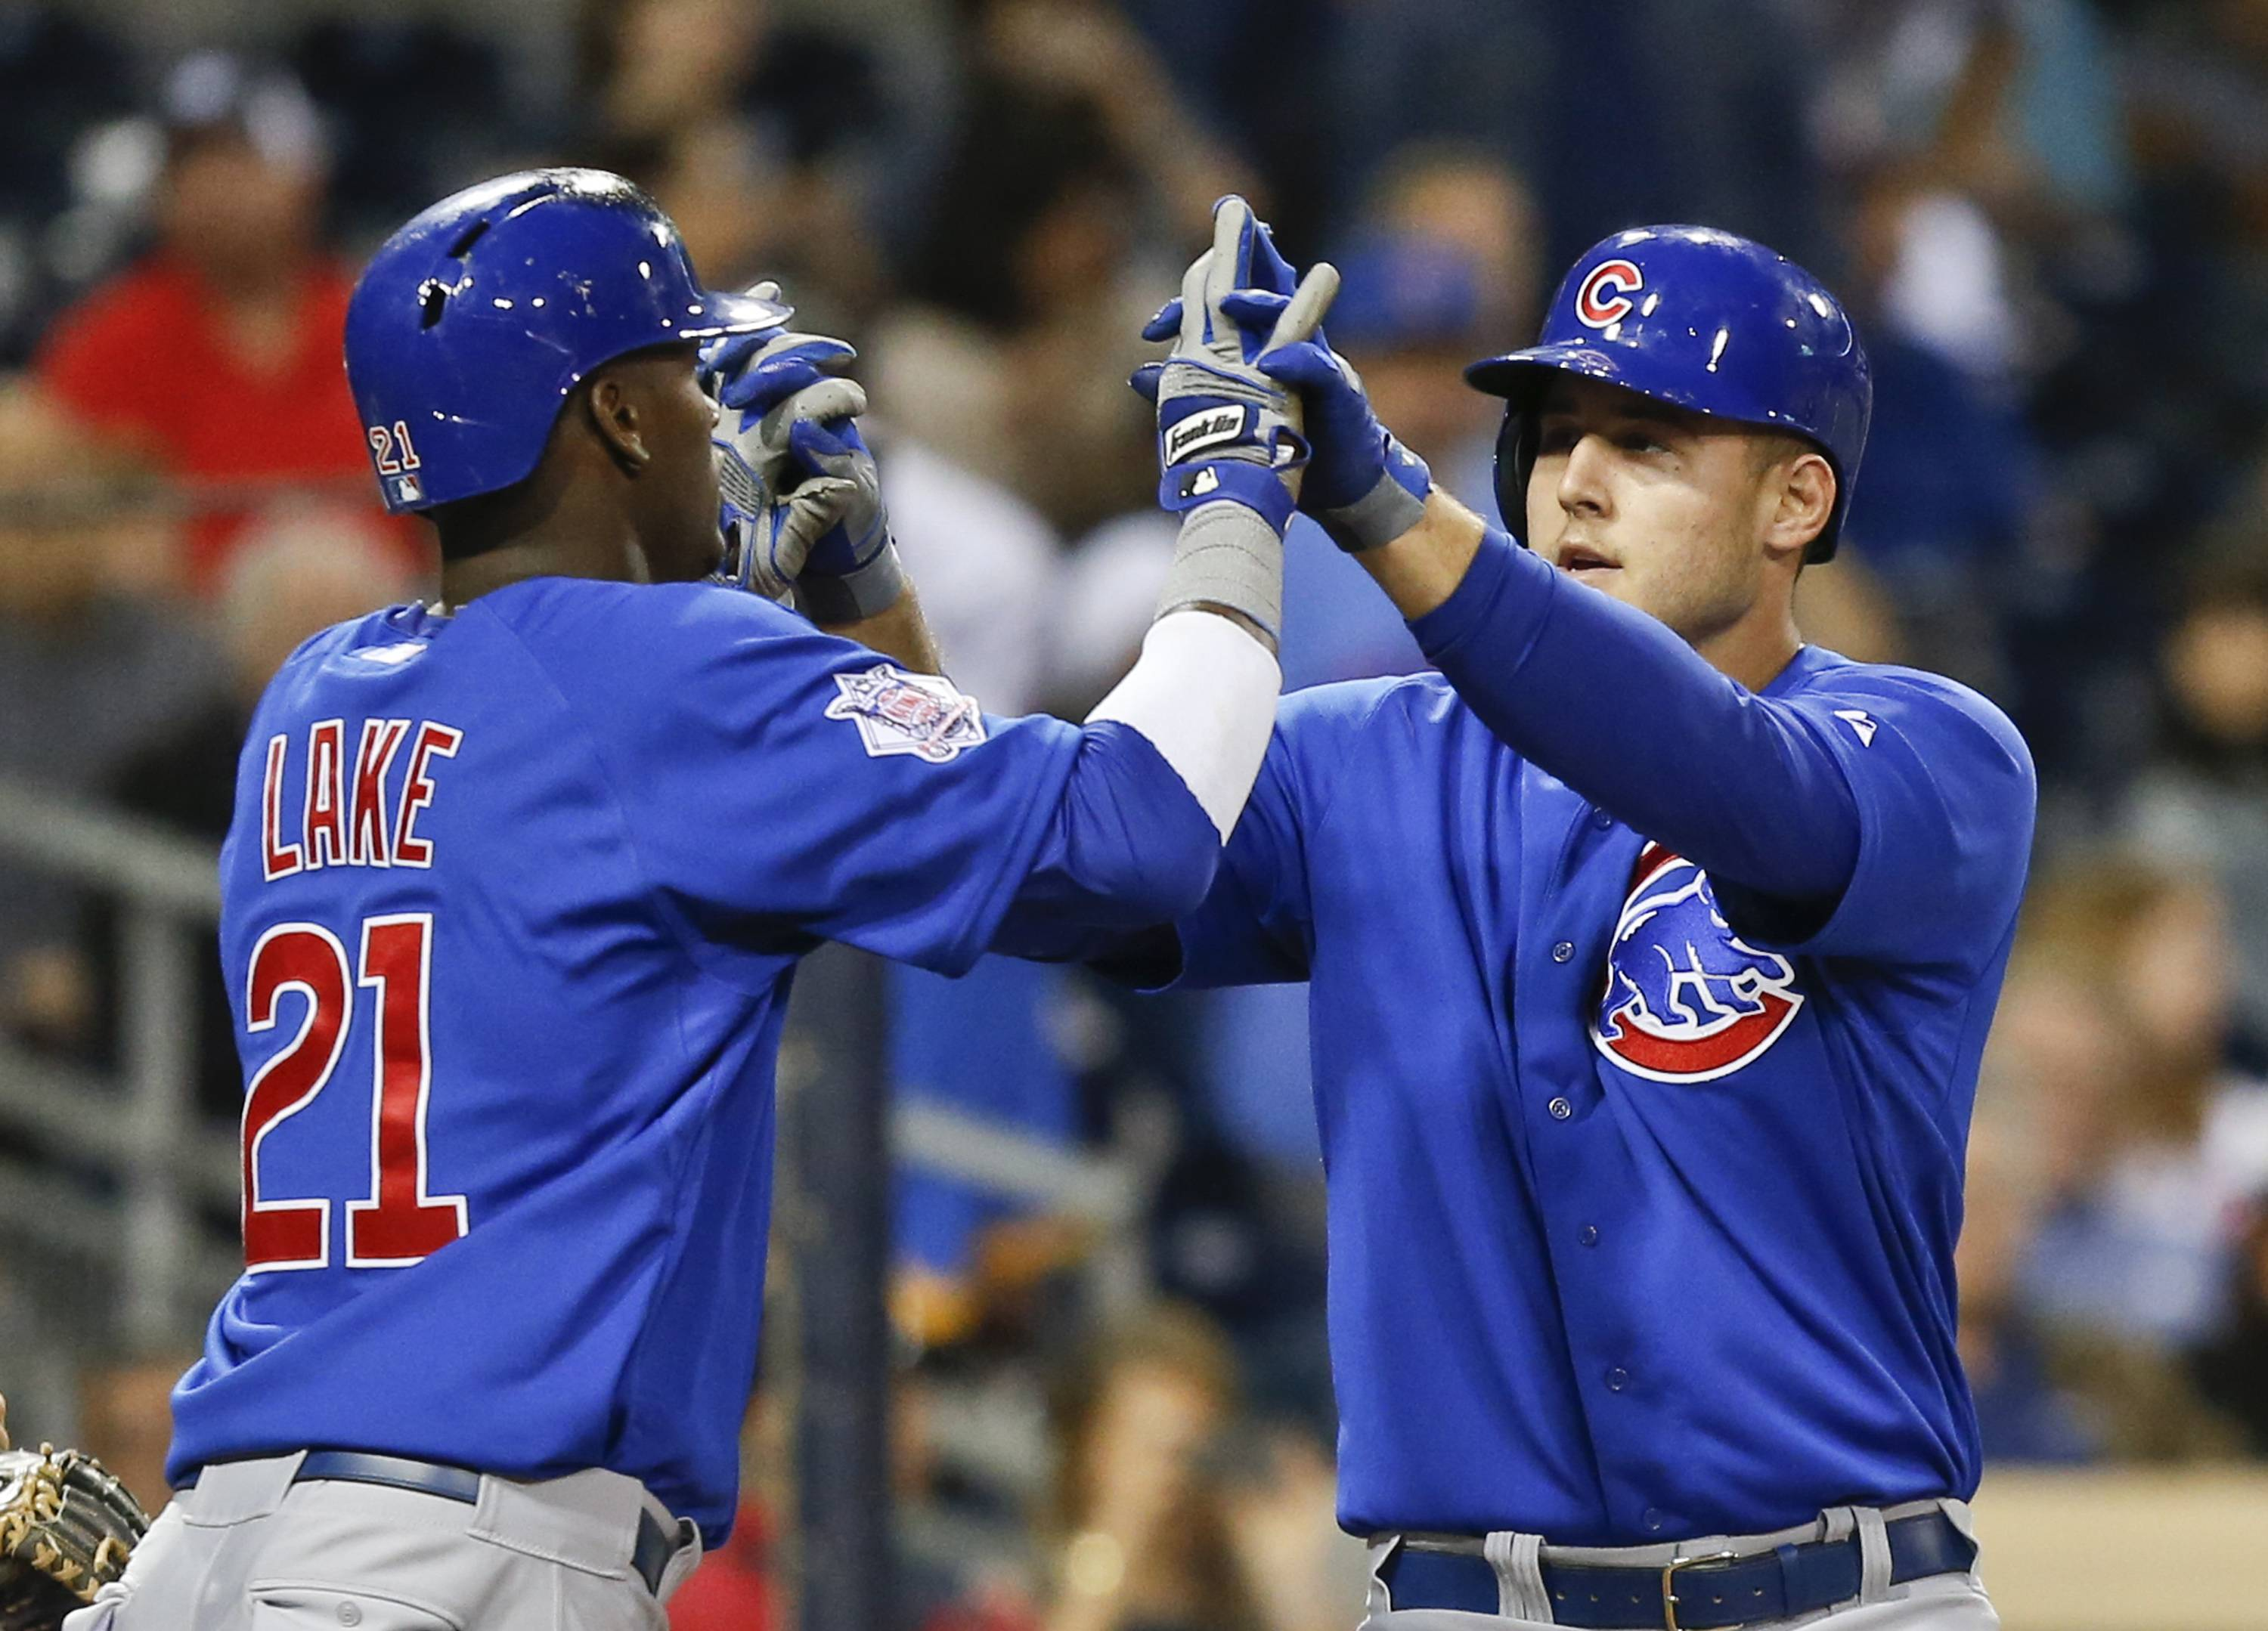 Chicago Cubs' Anthony Rizzo is congratulated by Junior Lake as he crosses home plate with a two run home run against then San Diego Padres in the fourth inning of a baseball game Thursday, May 22, 2014, in San Diego.